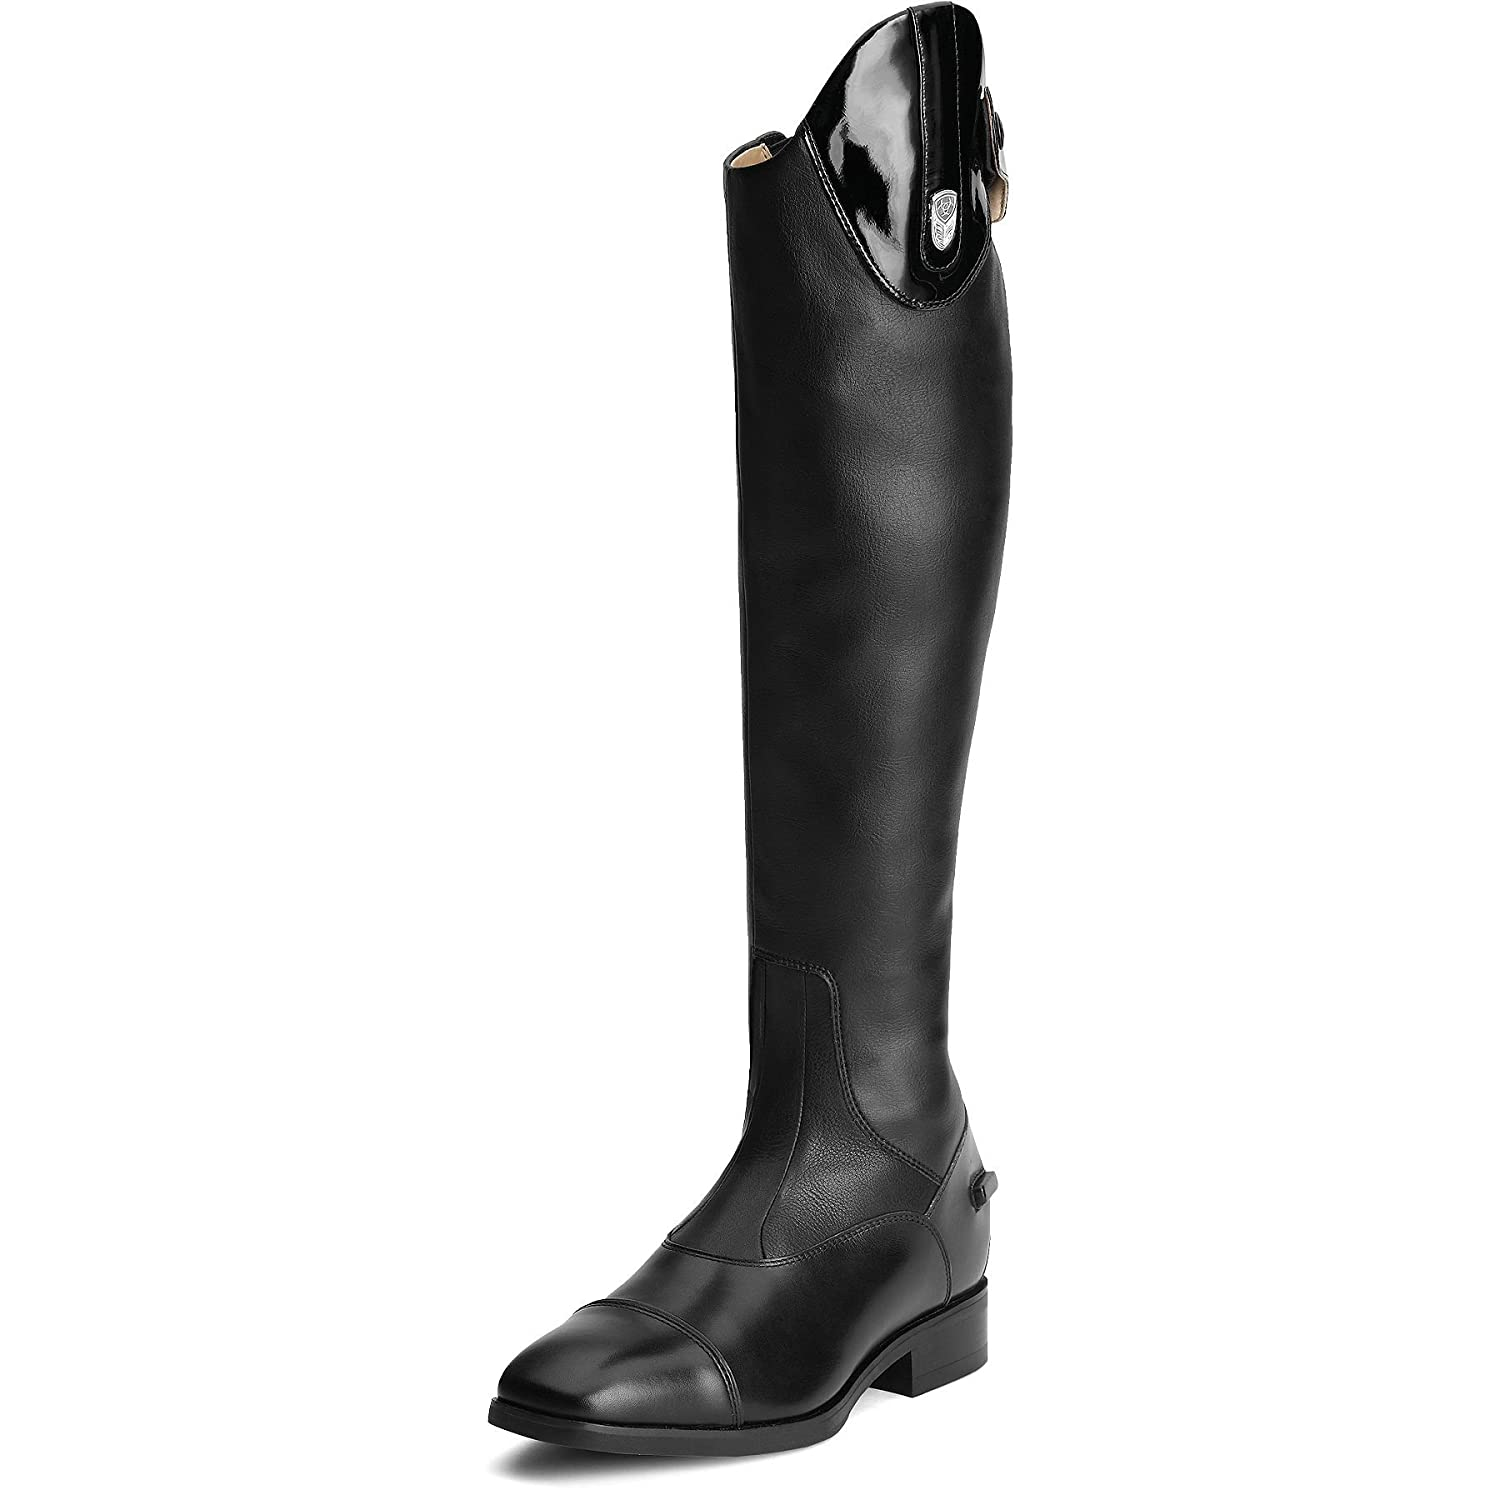 - Medium Reg Ariat Monaco pour Femme Stretch Haut – Noir Pat Adults 6.5